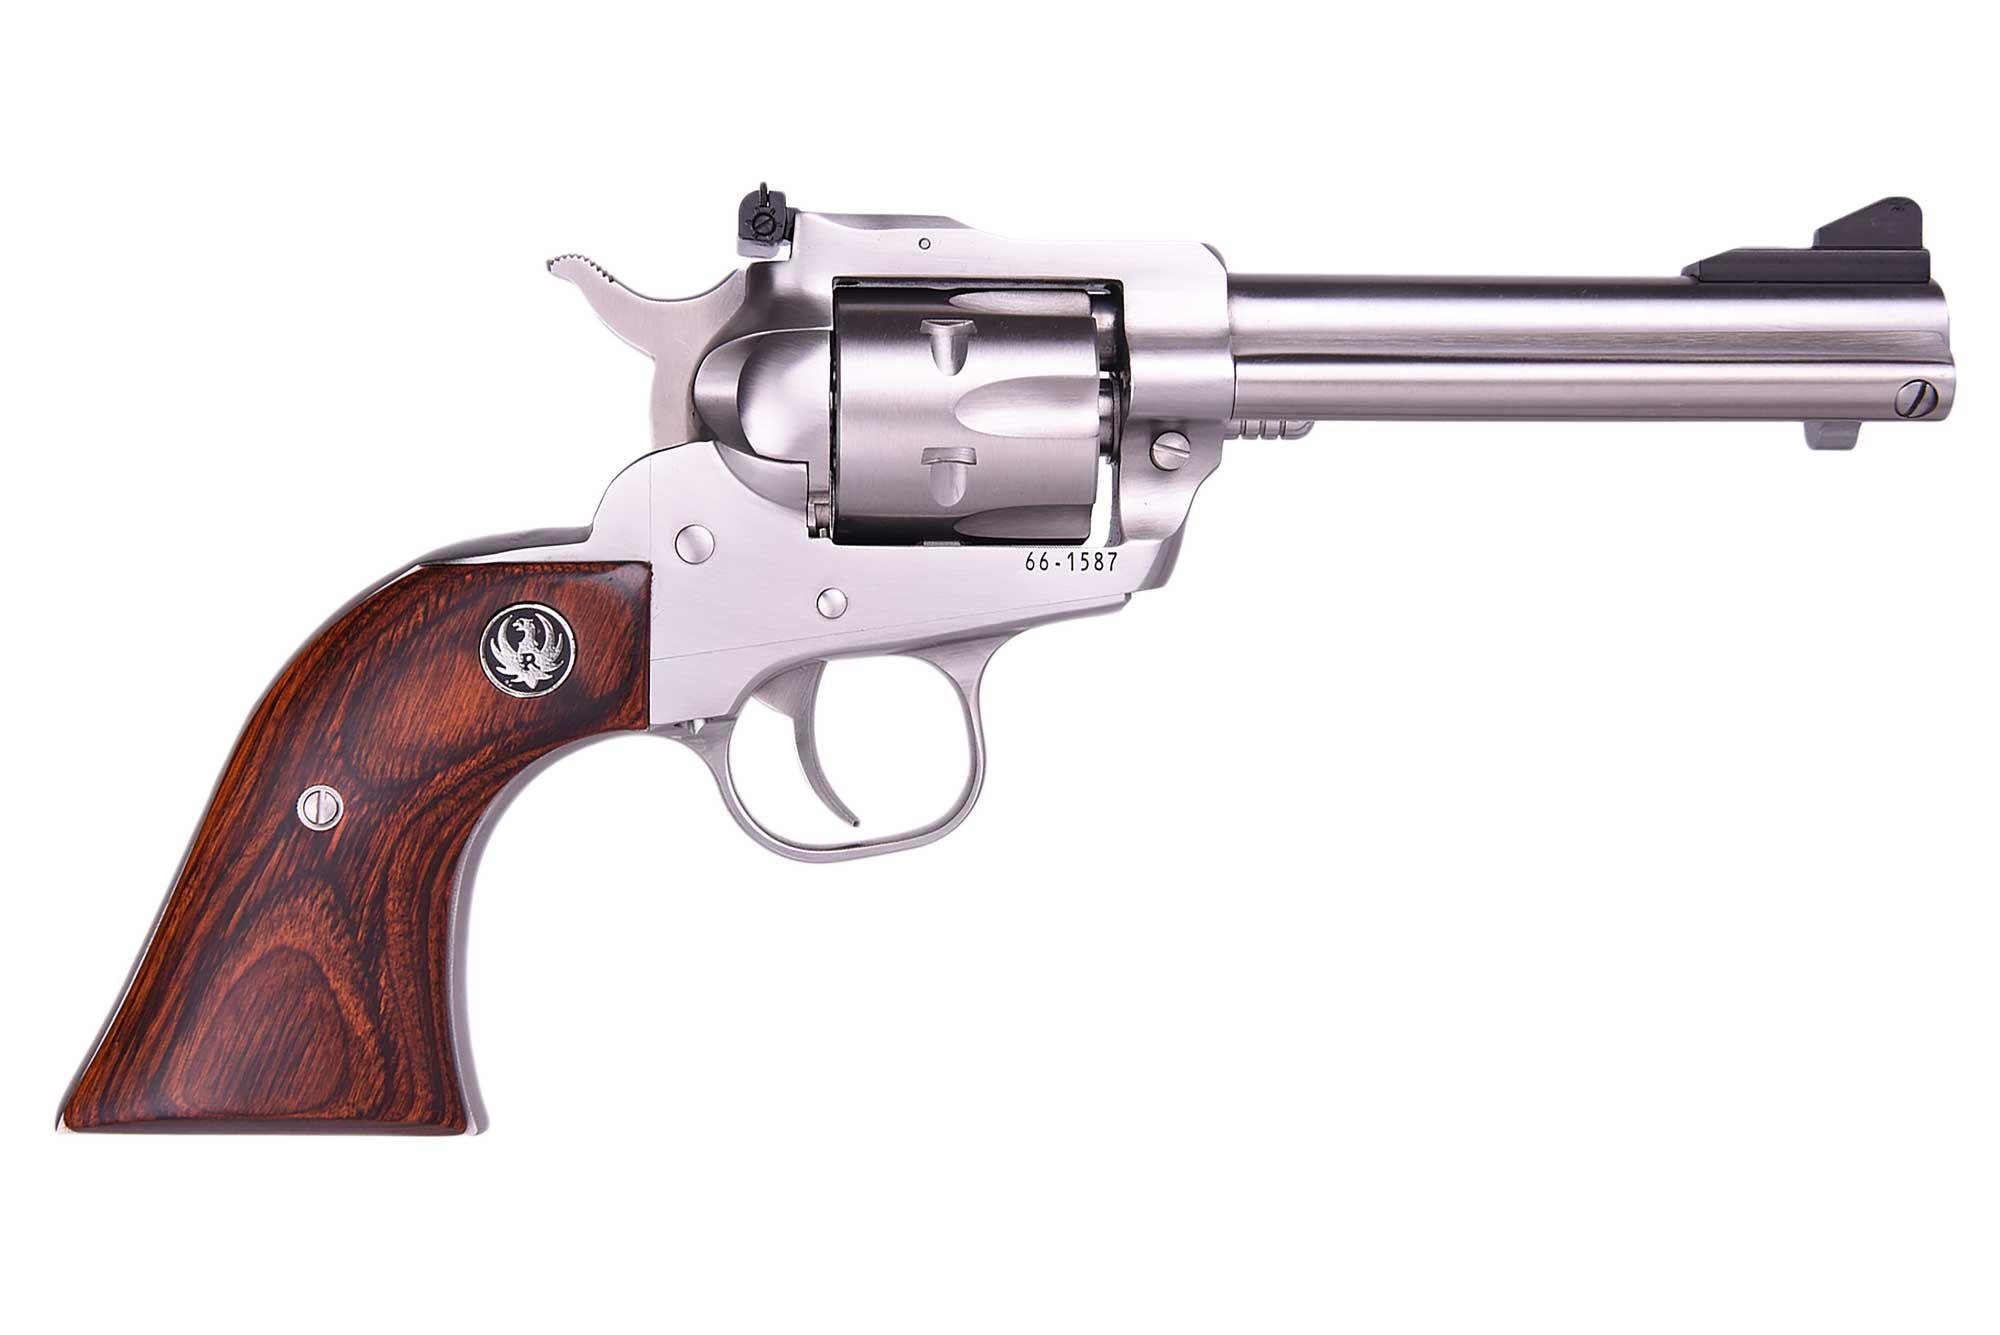 SINGLE SIX 22-22MAG 4-5/8SS AS - 0627  LIPSEY EXCLUSIVE